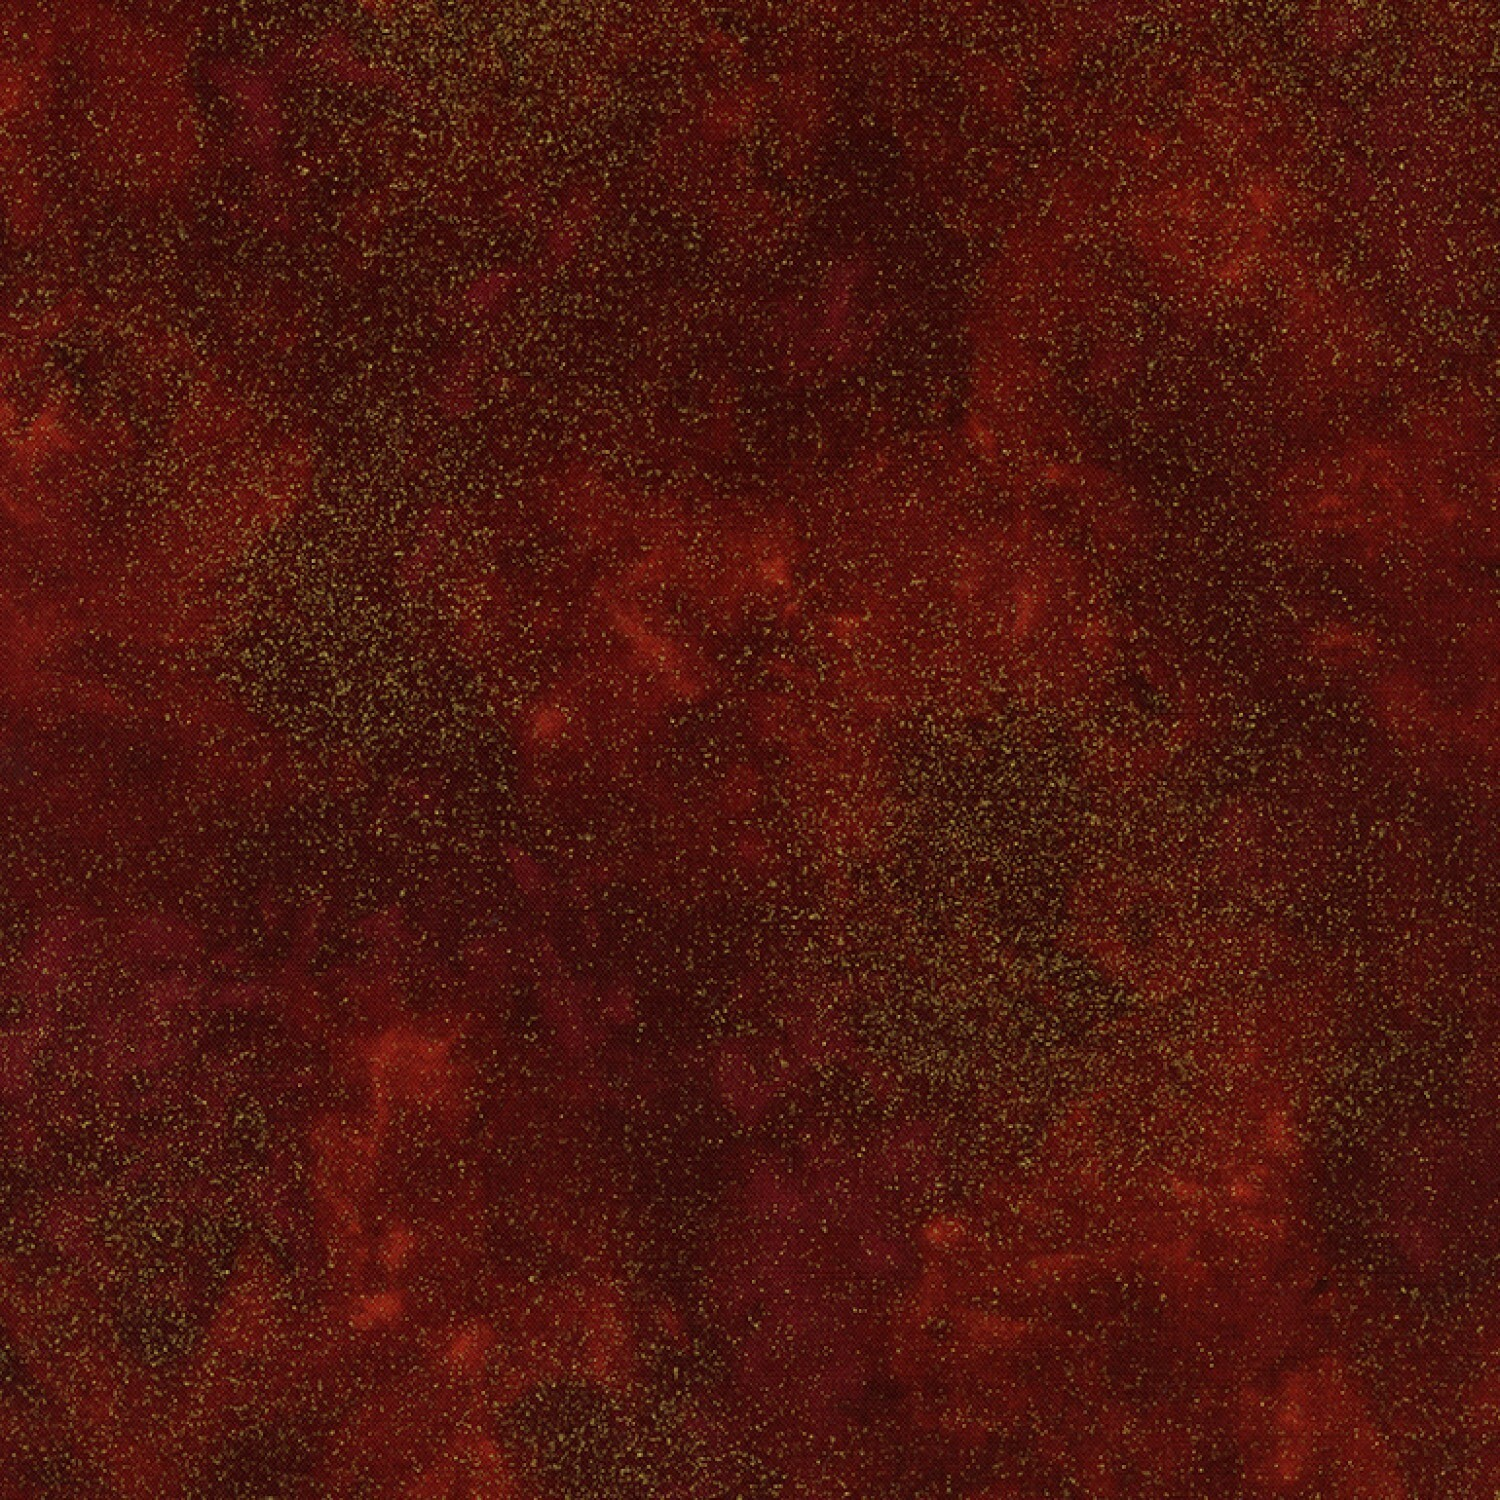 Spice Shimmer - 1/2m cut 55891